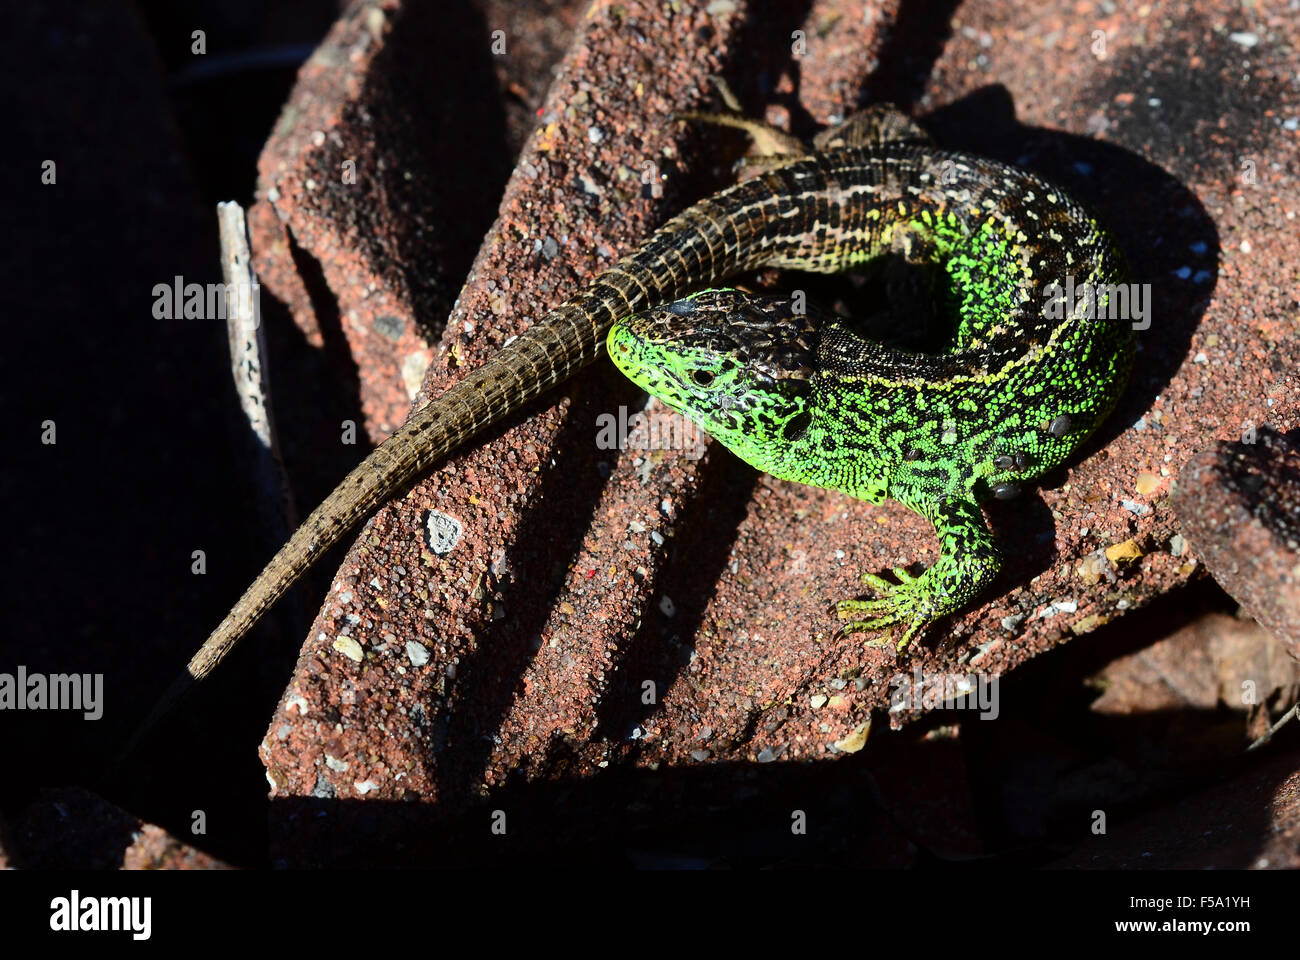 Male sand lizard on some tiles Dorset UK - Stock Image